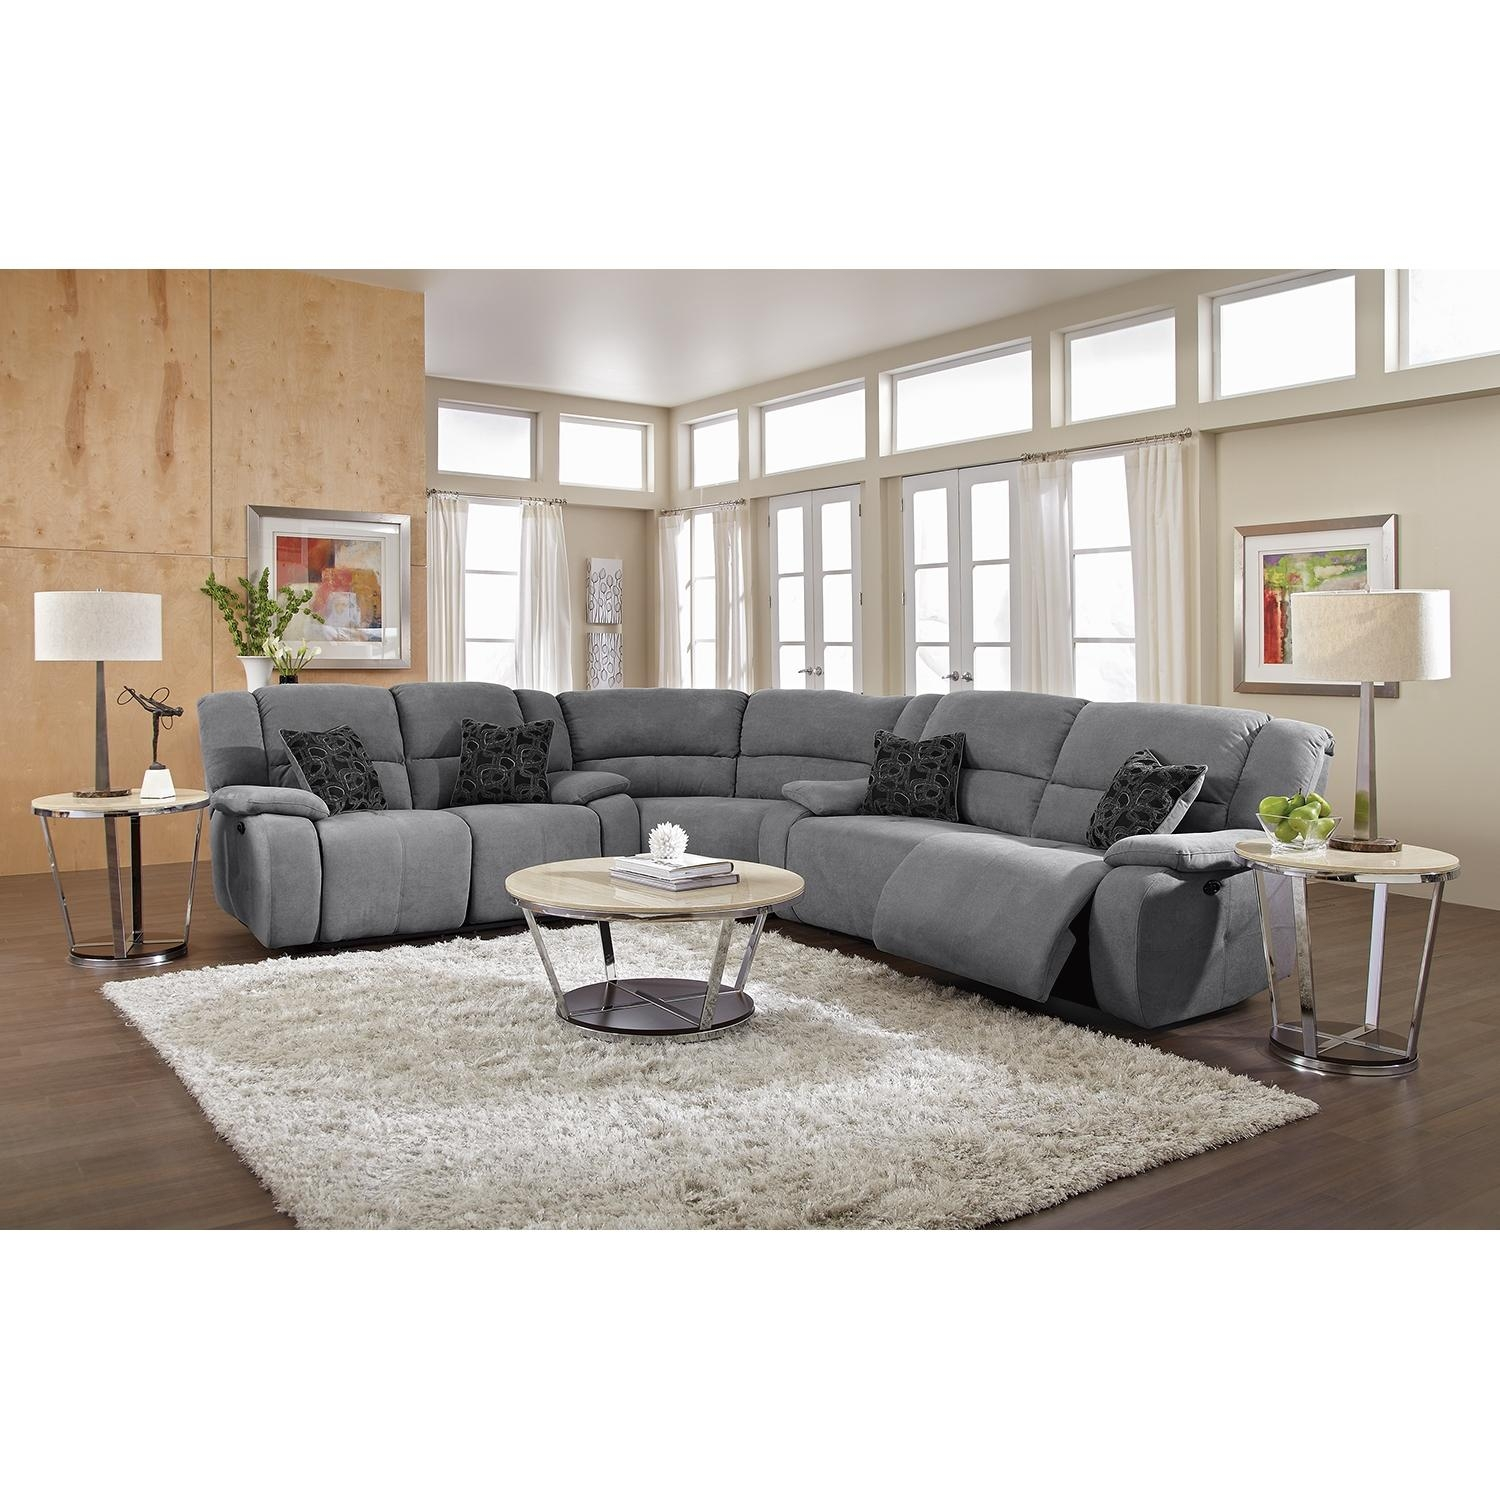 Furniture: Sectional Couches With Recliners | U Shaped Sectional Regarding Sectional Sofas With Electric Recliners (Image 12 of 22)